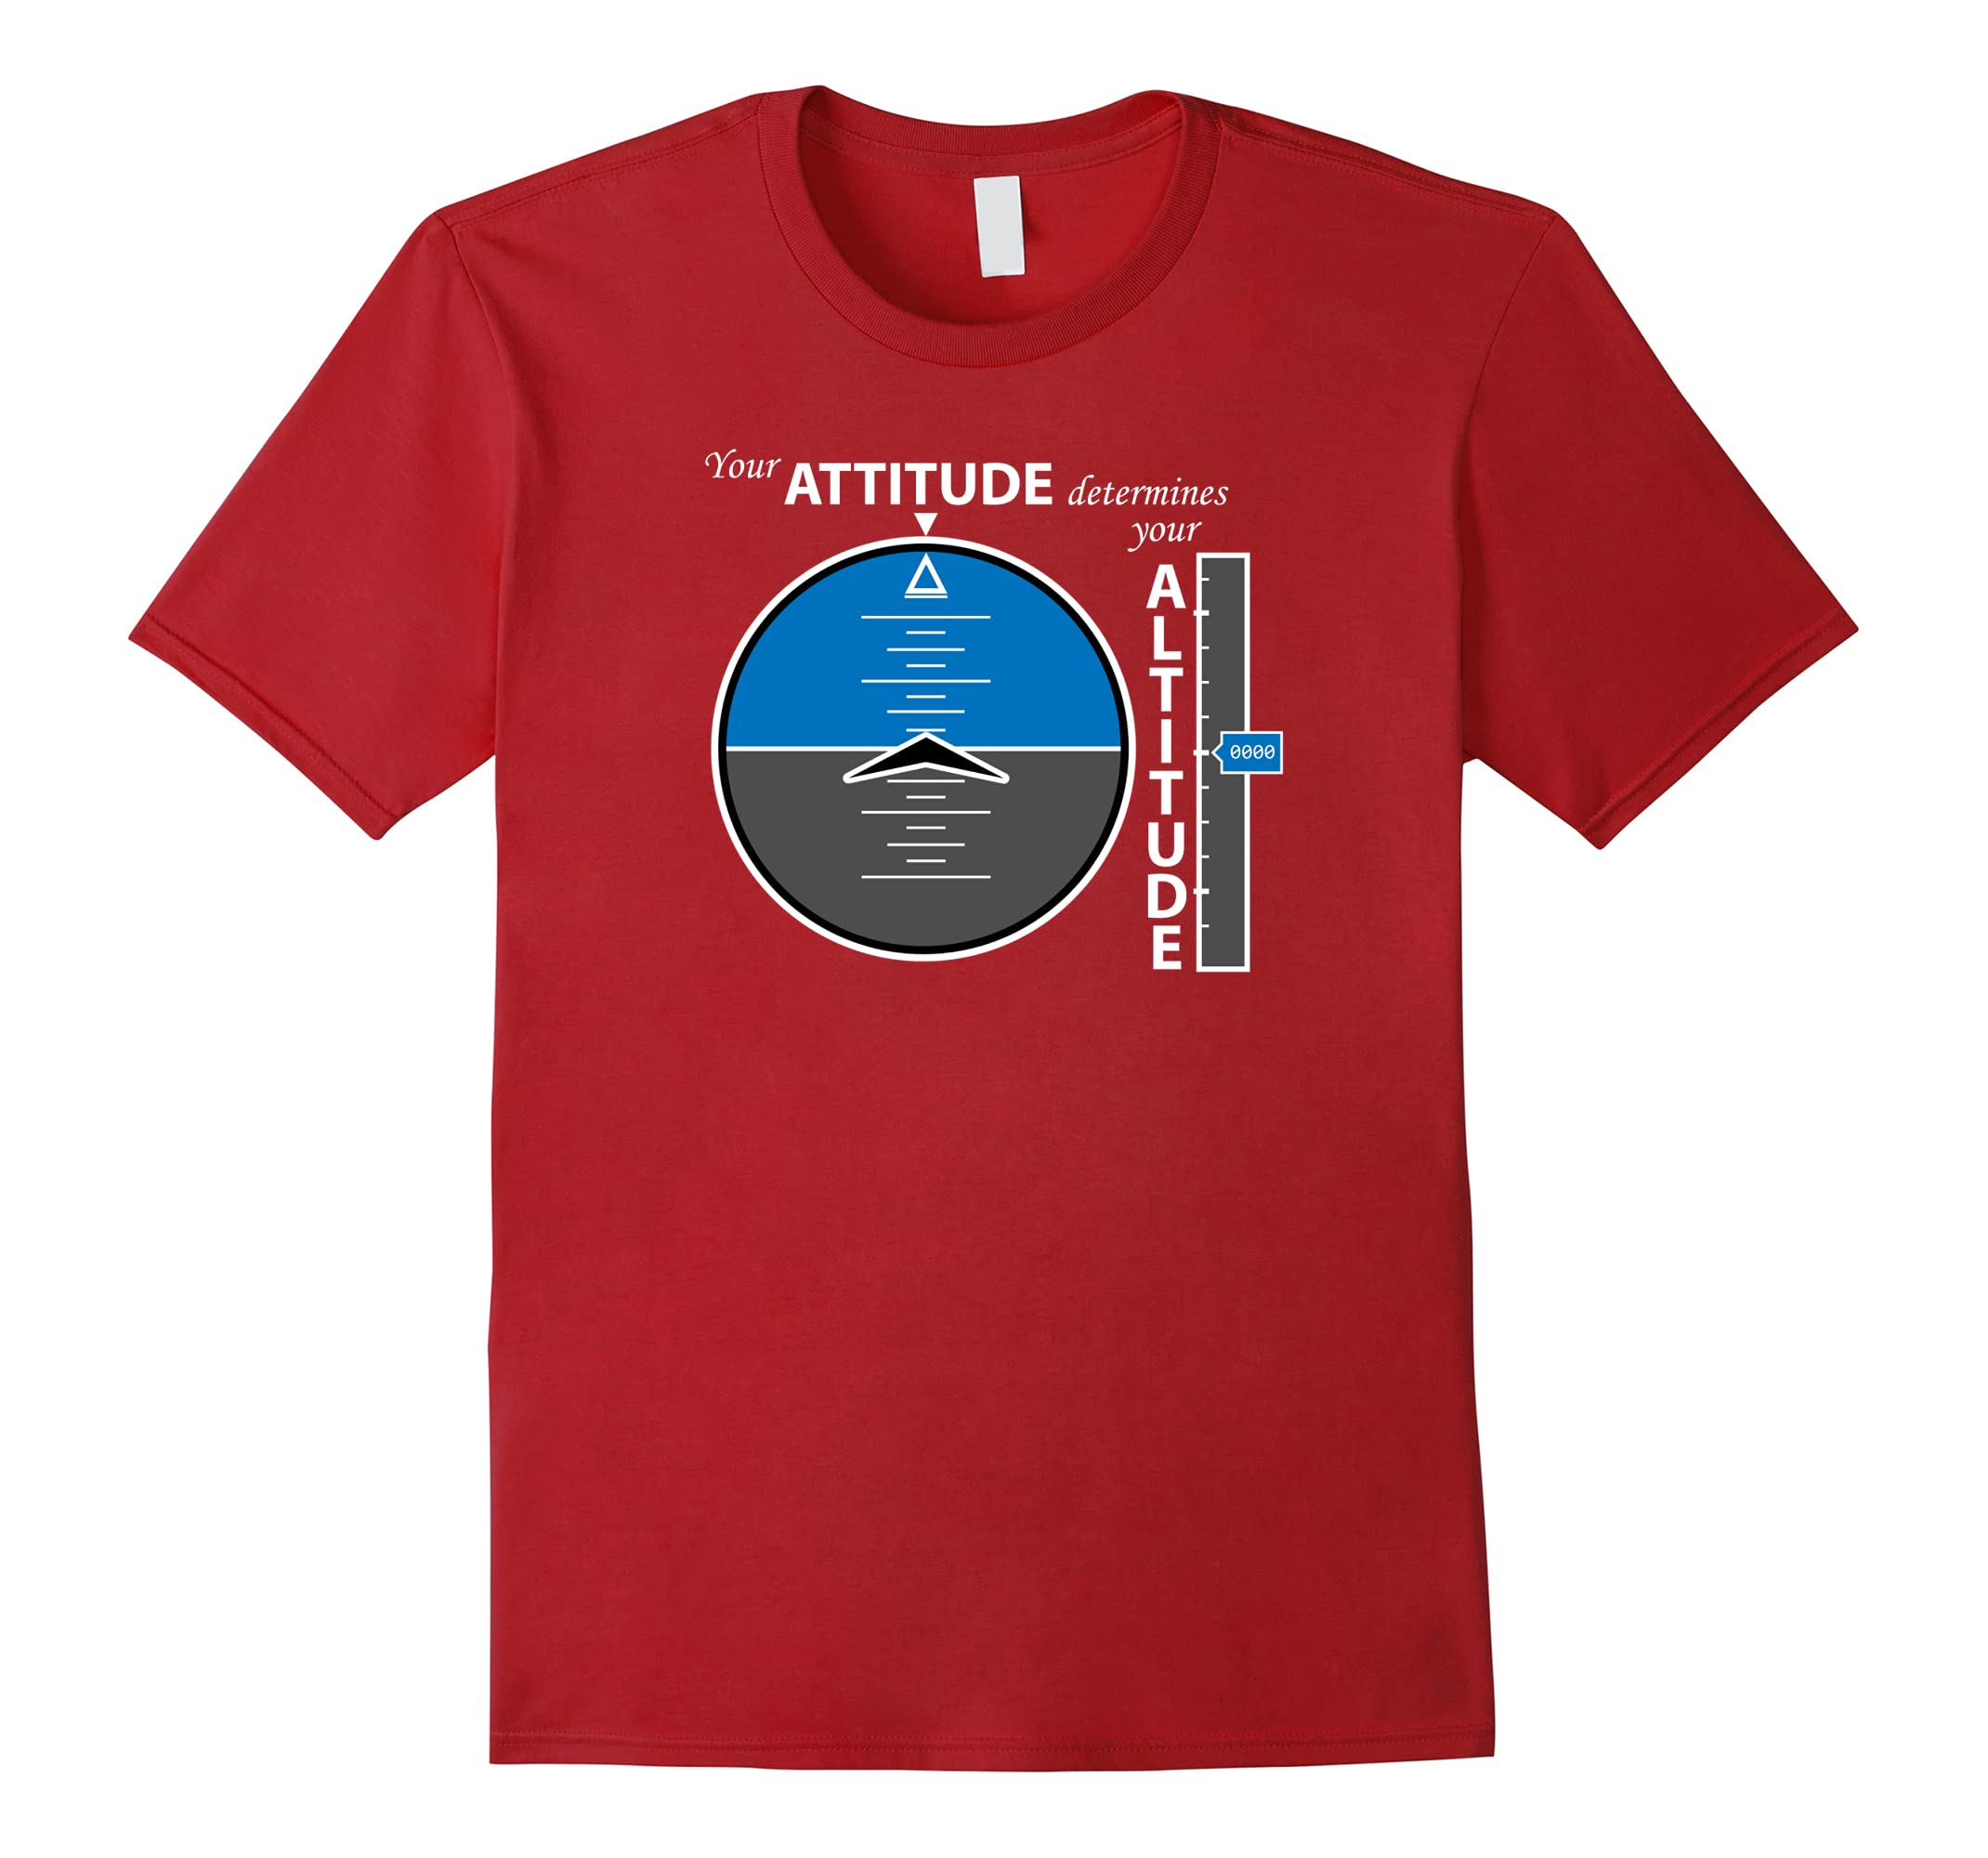 Attitude Altitude Aviation T-shirt with a positive message-ah my shirt one gift